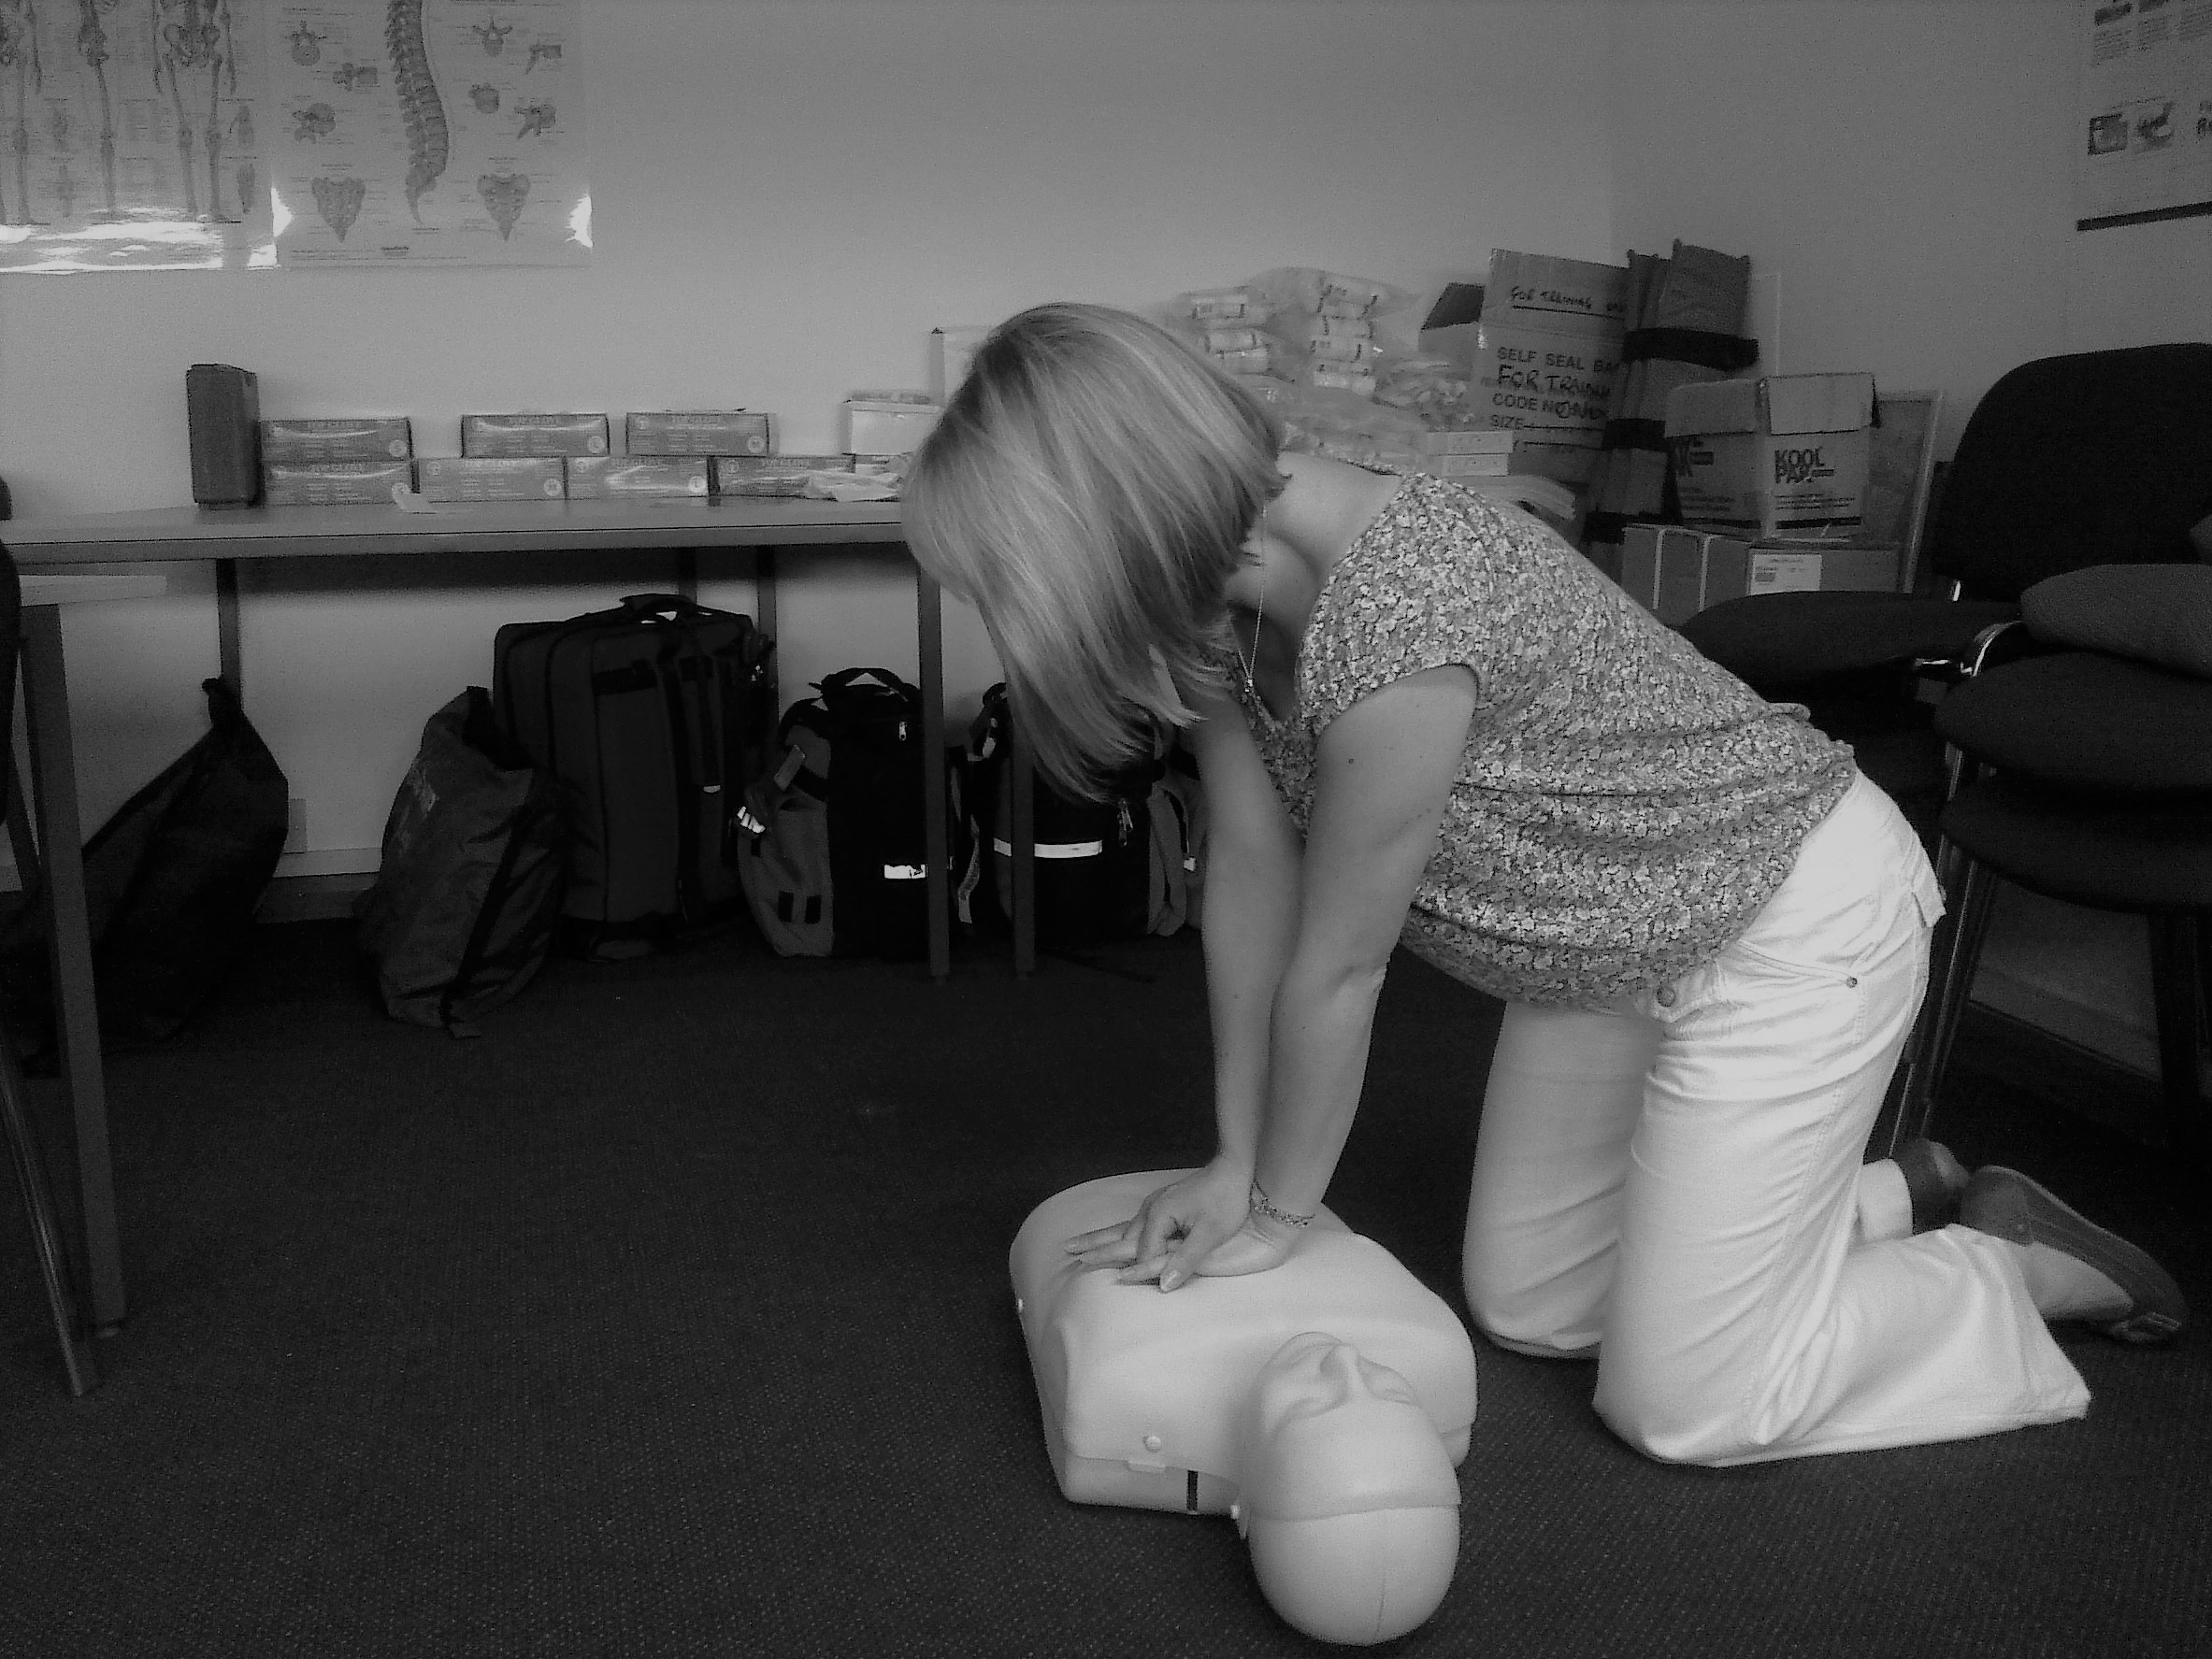 CPR training3